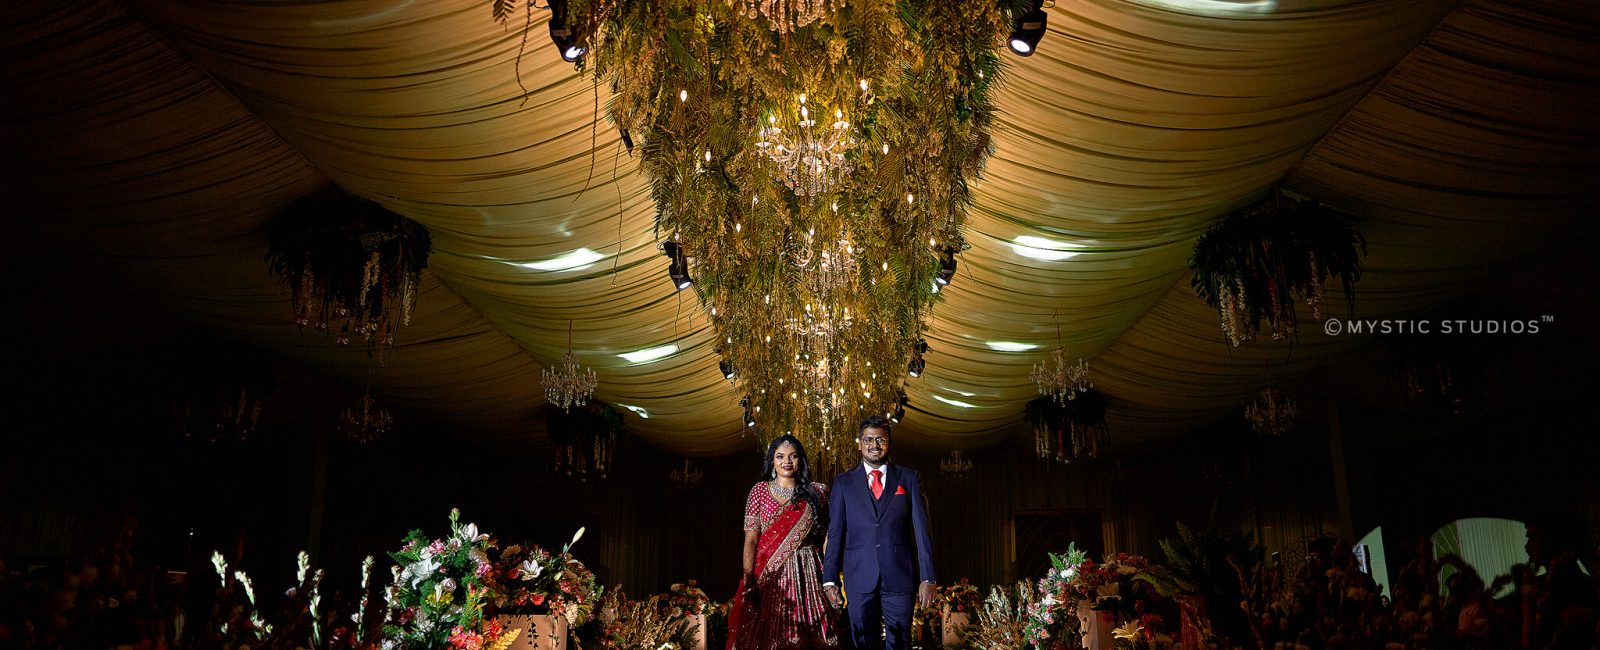 A Coimbatore Wedding That Felt Like Being Part Of The Family